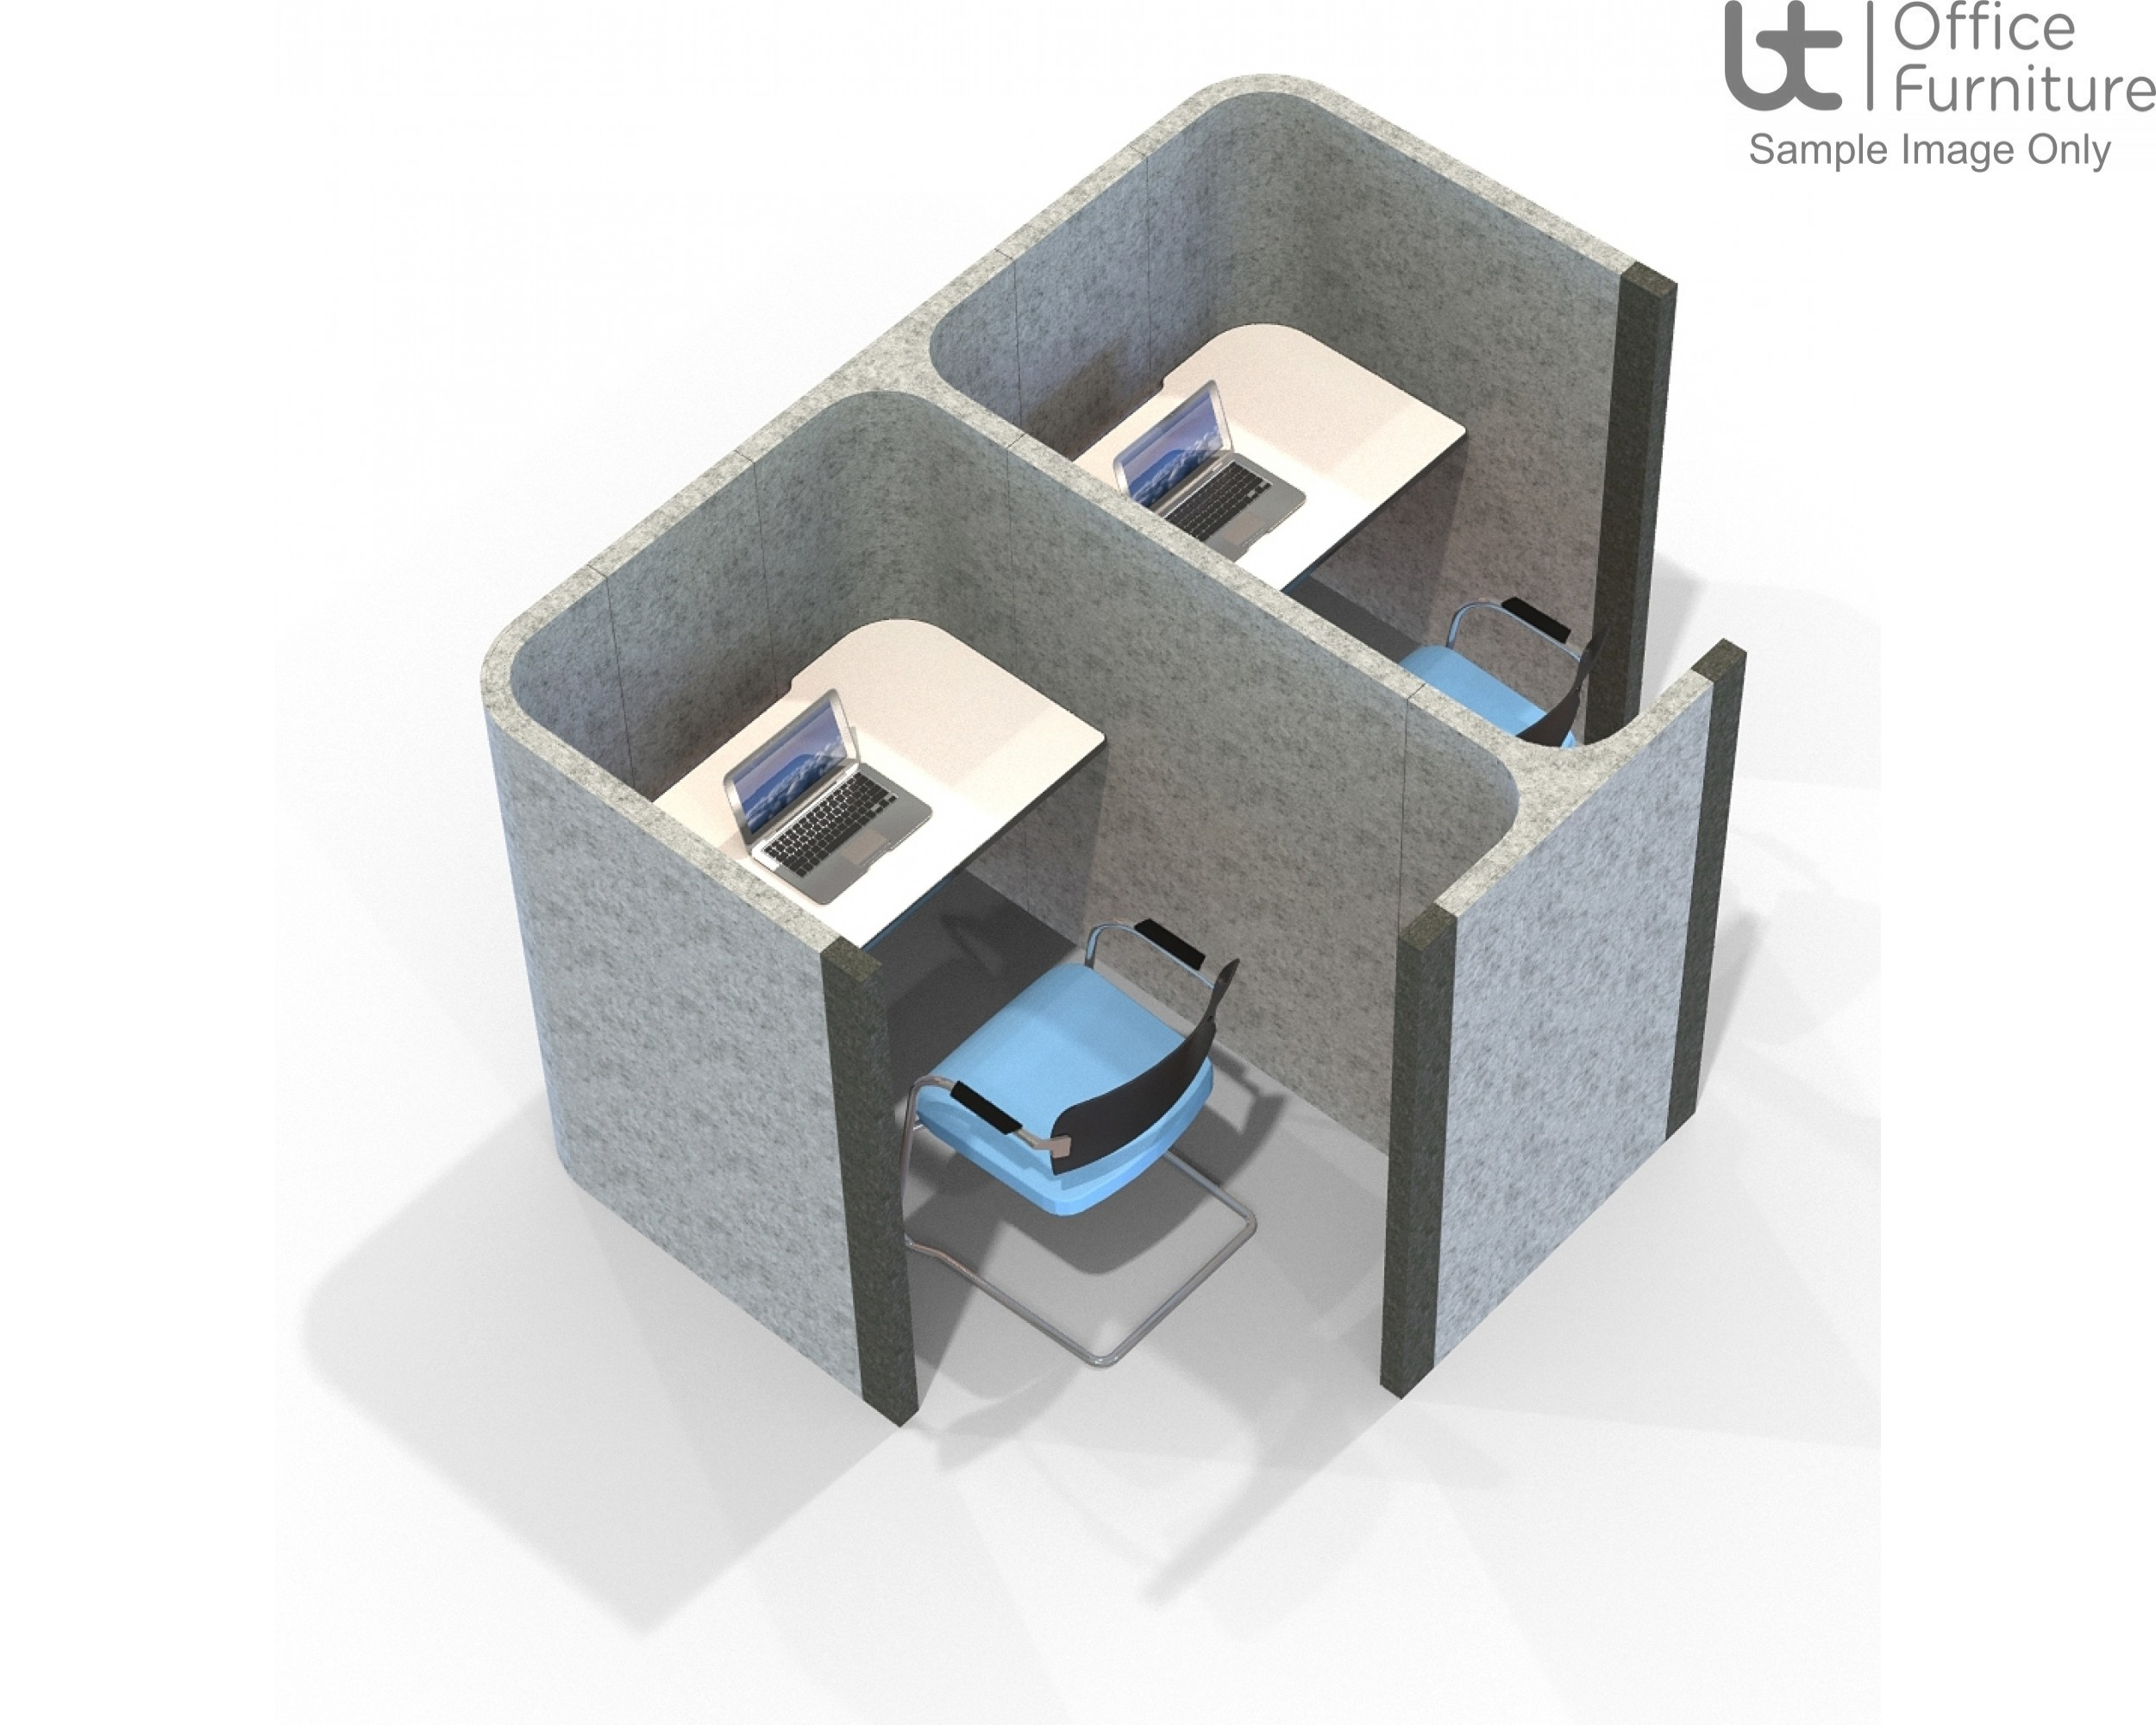 Acoustic Learning - Side by Side Double Study Booths Including Desks 1400mm High